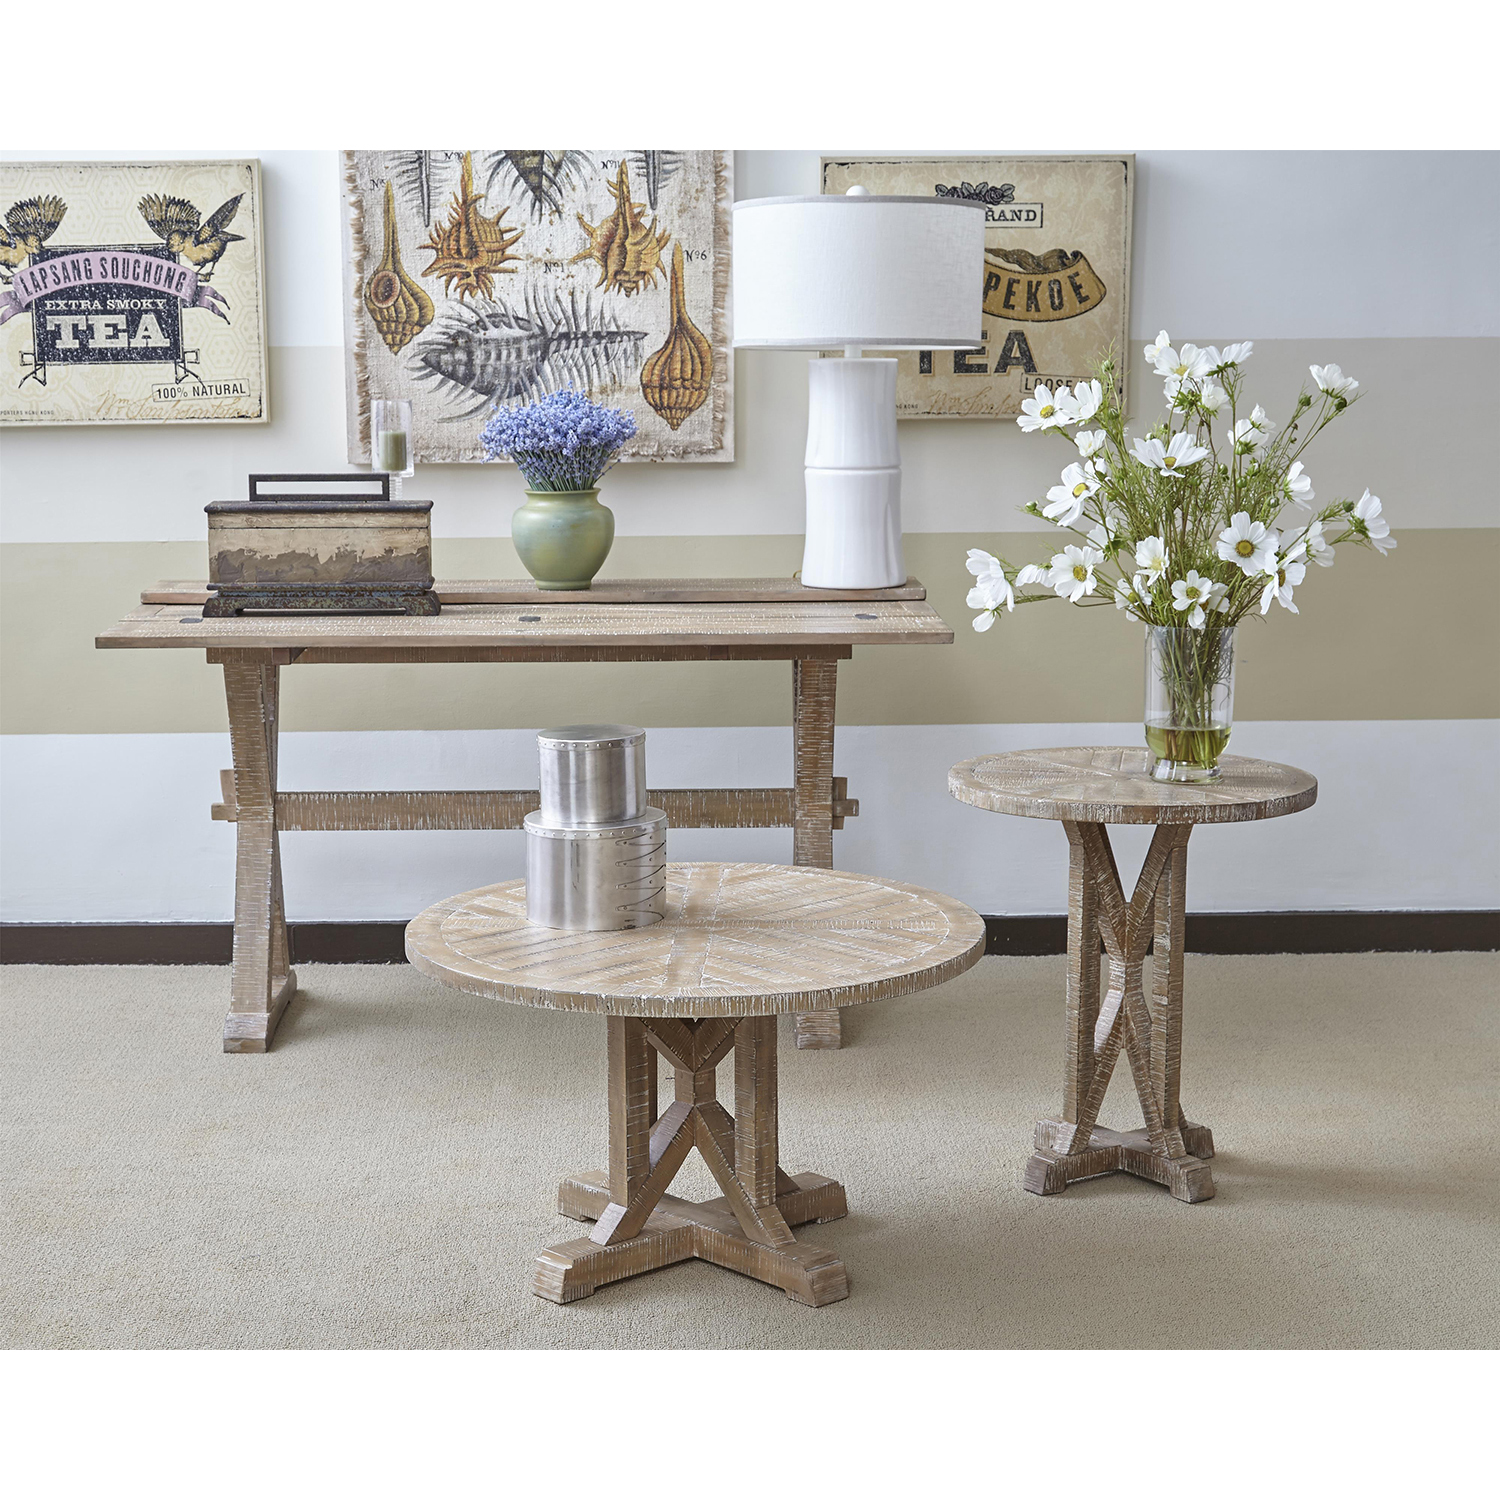 Pacific Heights Drop Leaf Sofa Table/Desk - Bisque - JOFR-1591-4